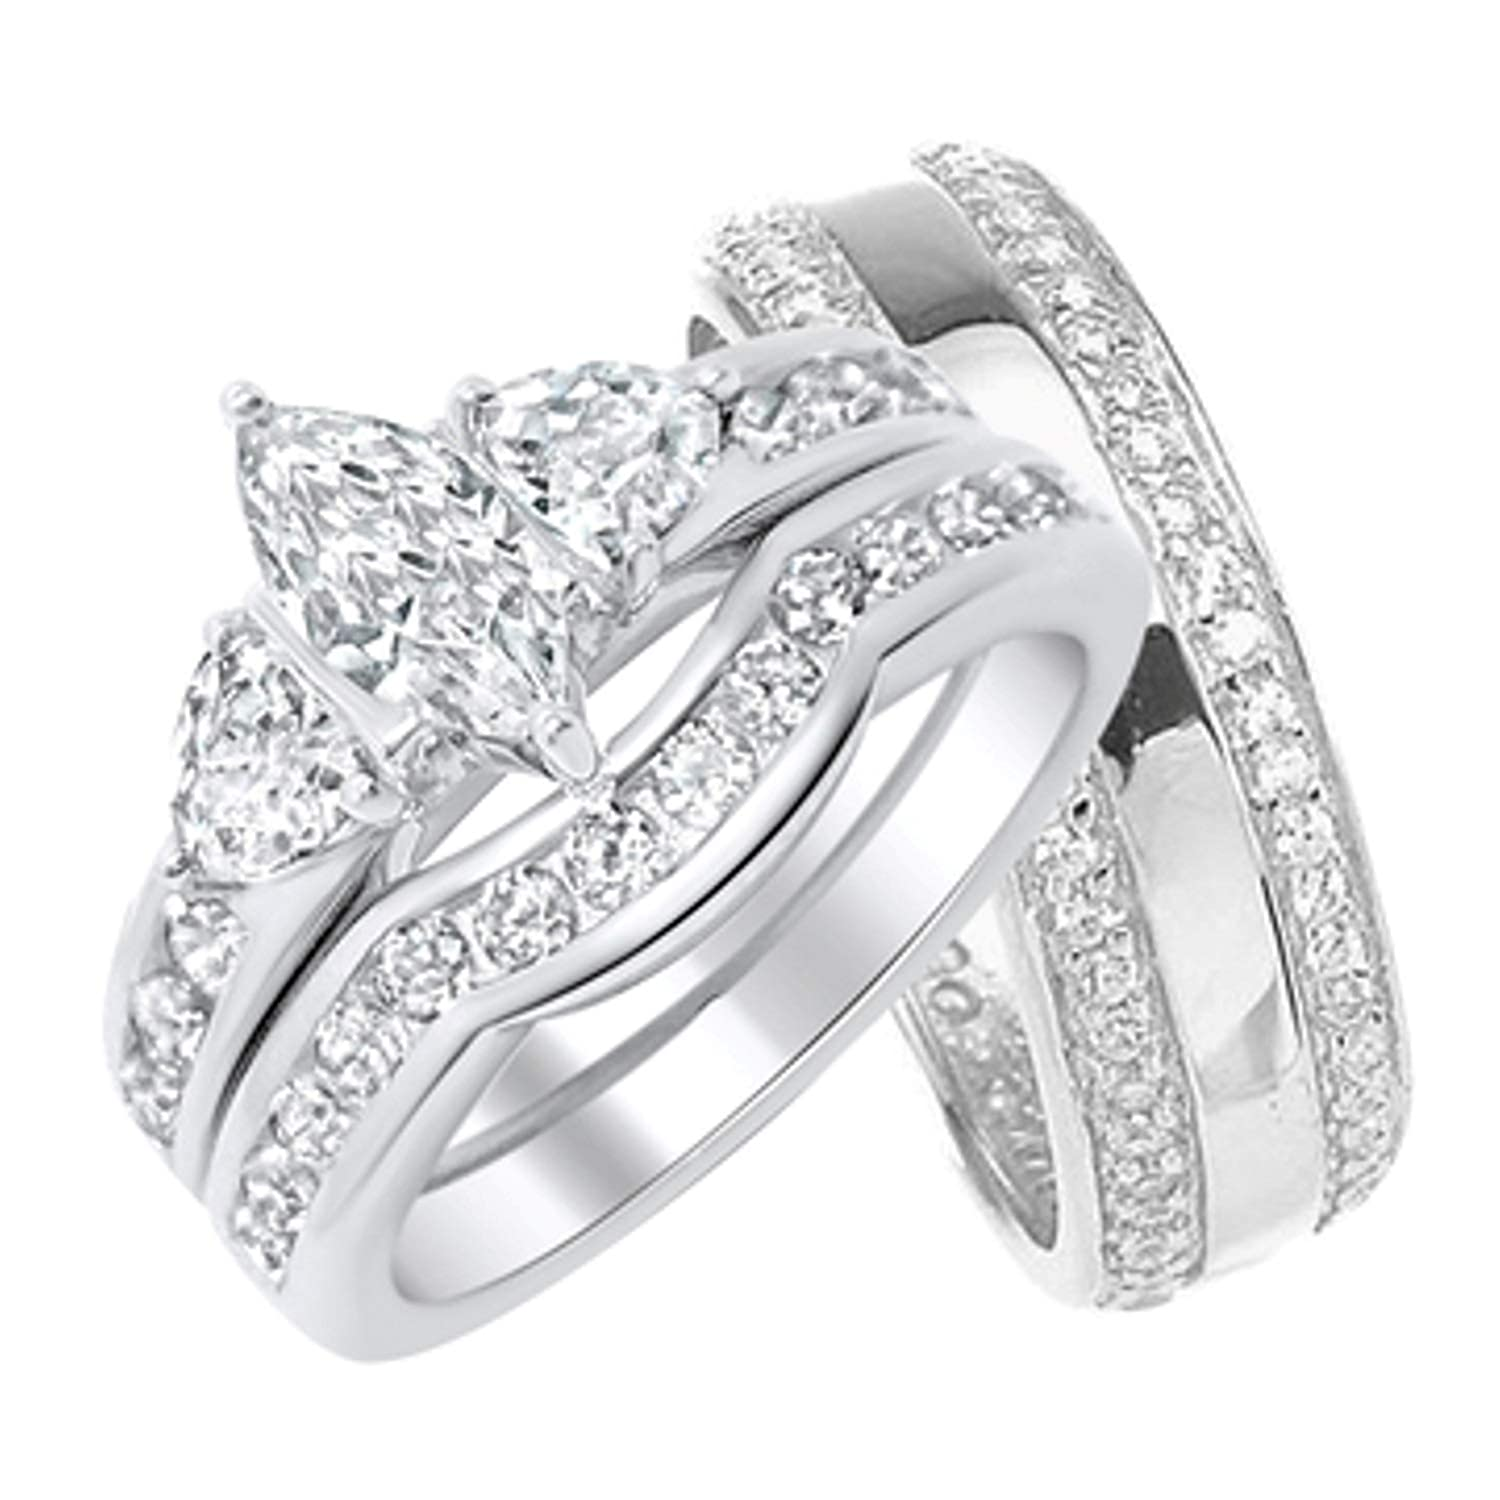 His And Her Wedding Bands.Amazon Com His Hers Wedding Ring Set Matching Sterling